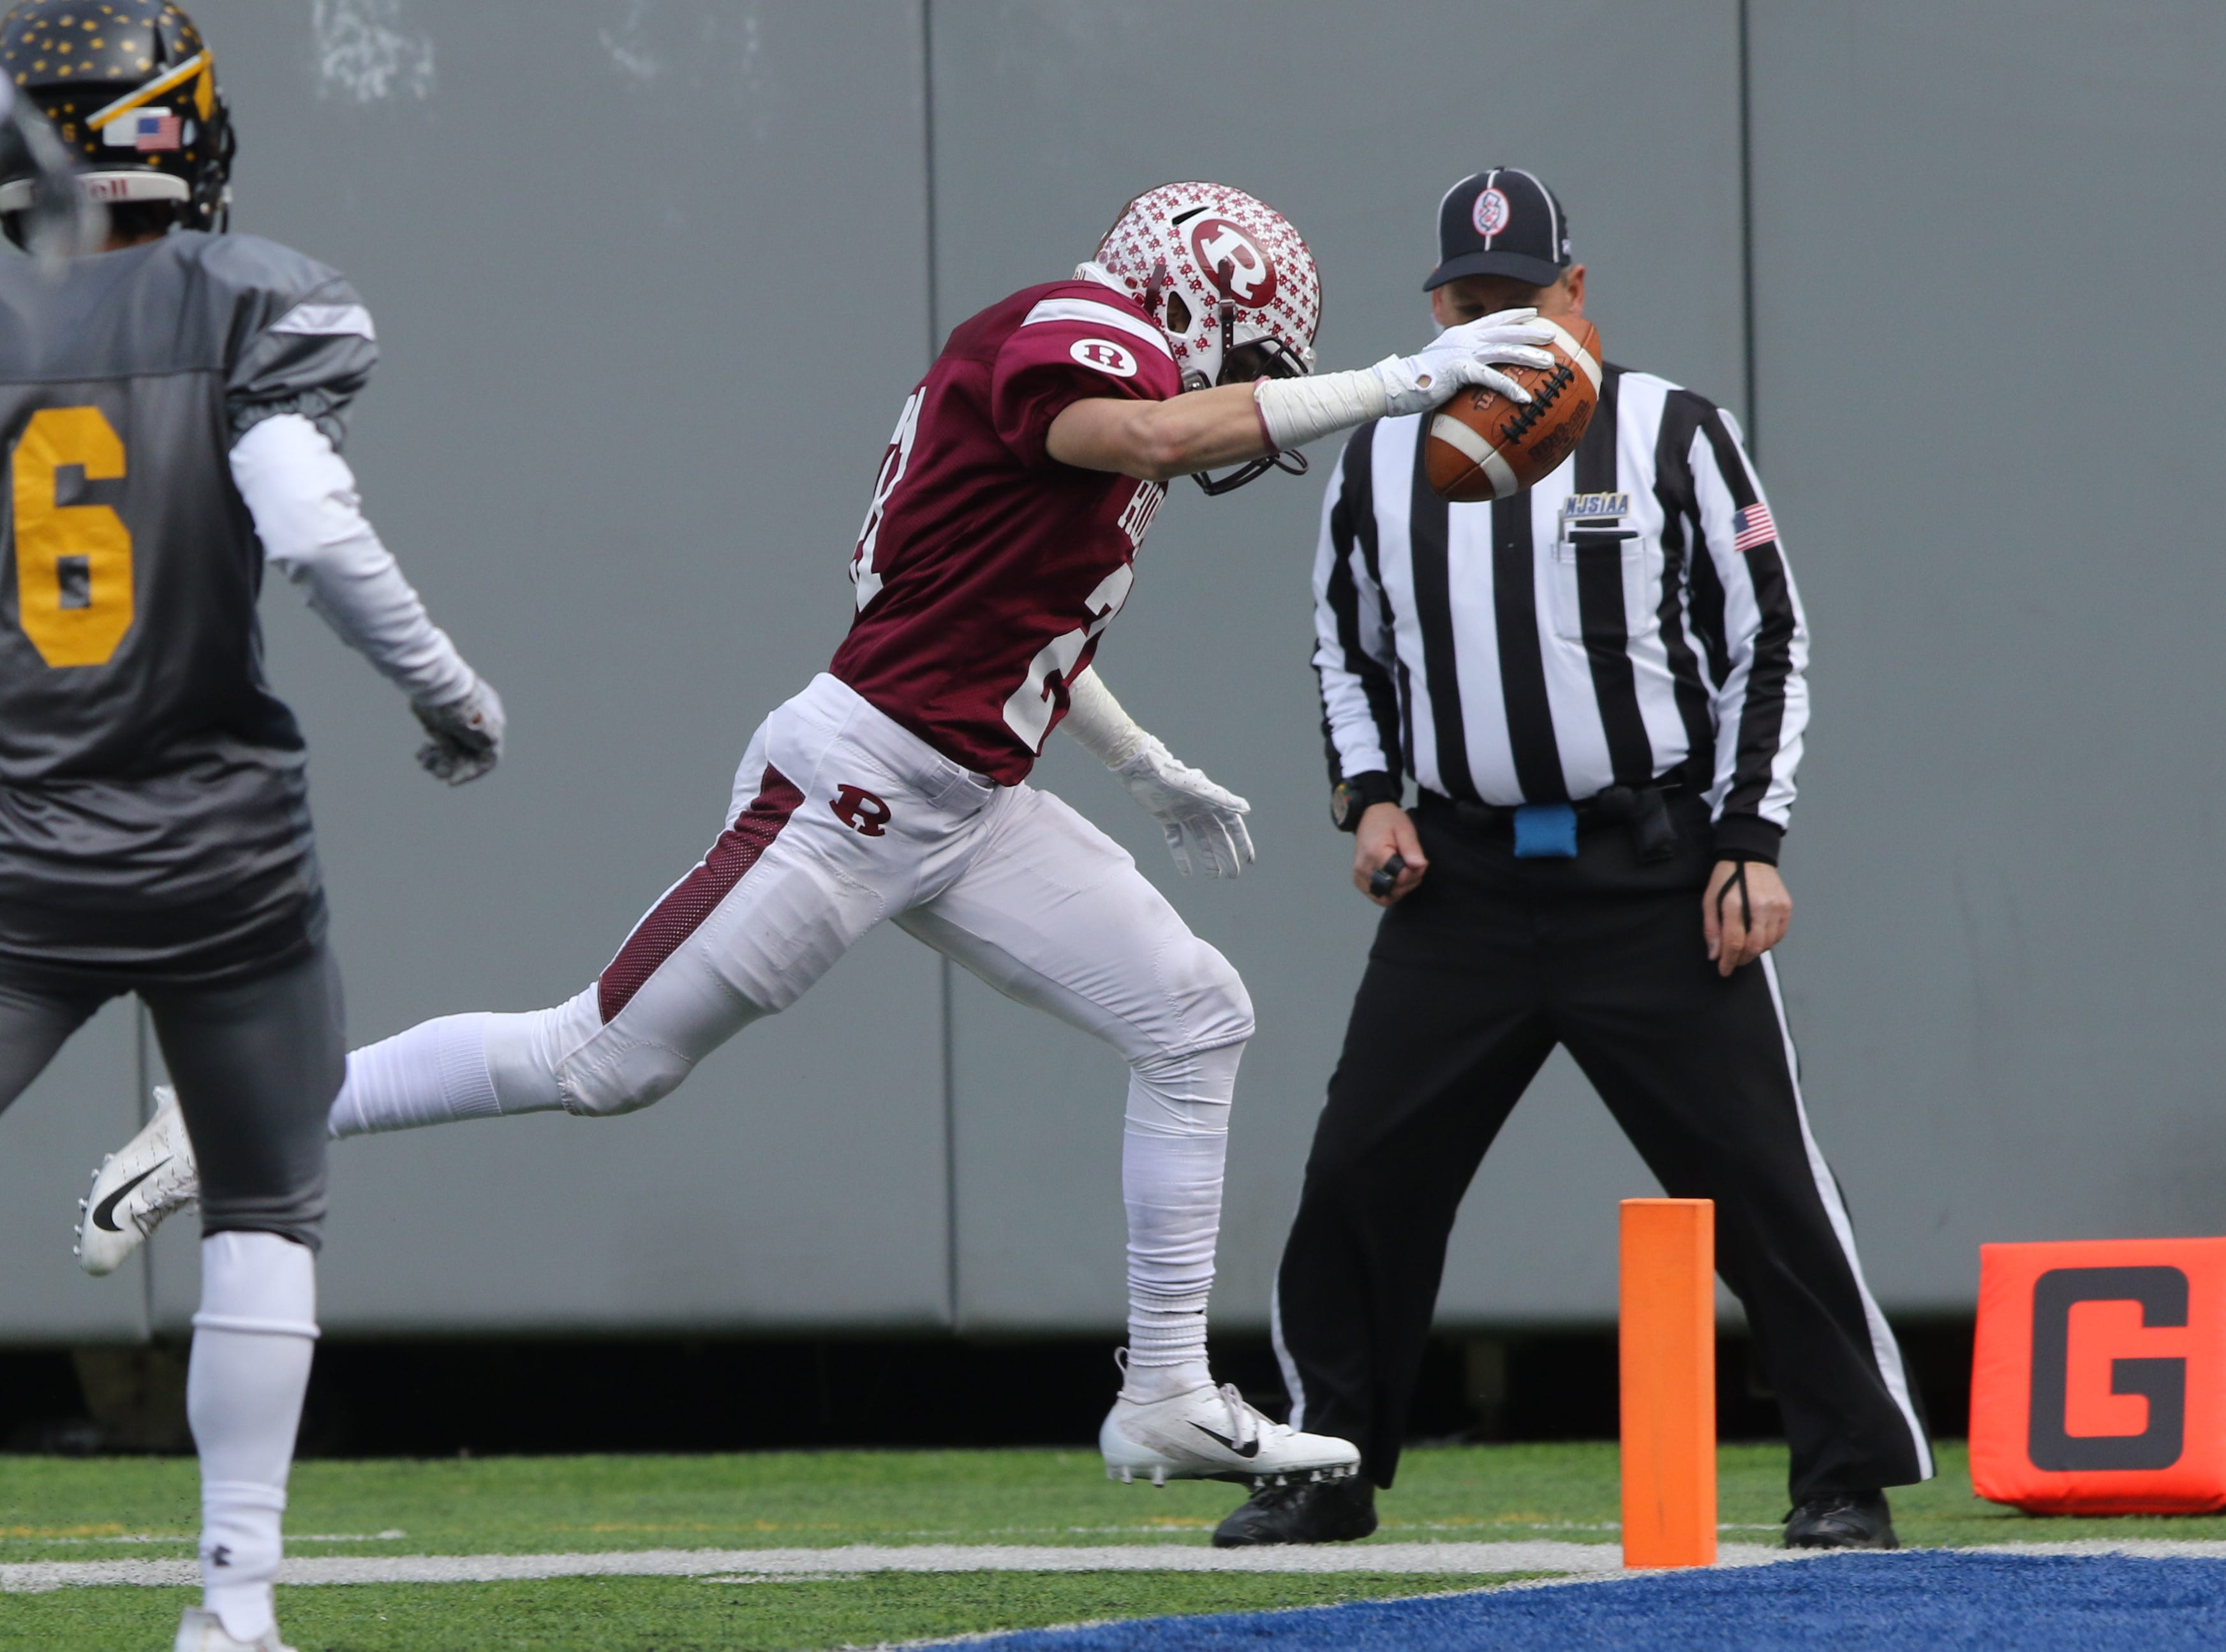 Will McDermott of Ridgewood scores a second two point conversion for the Maroons.